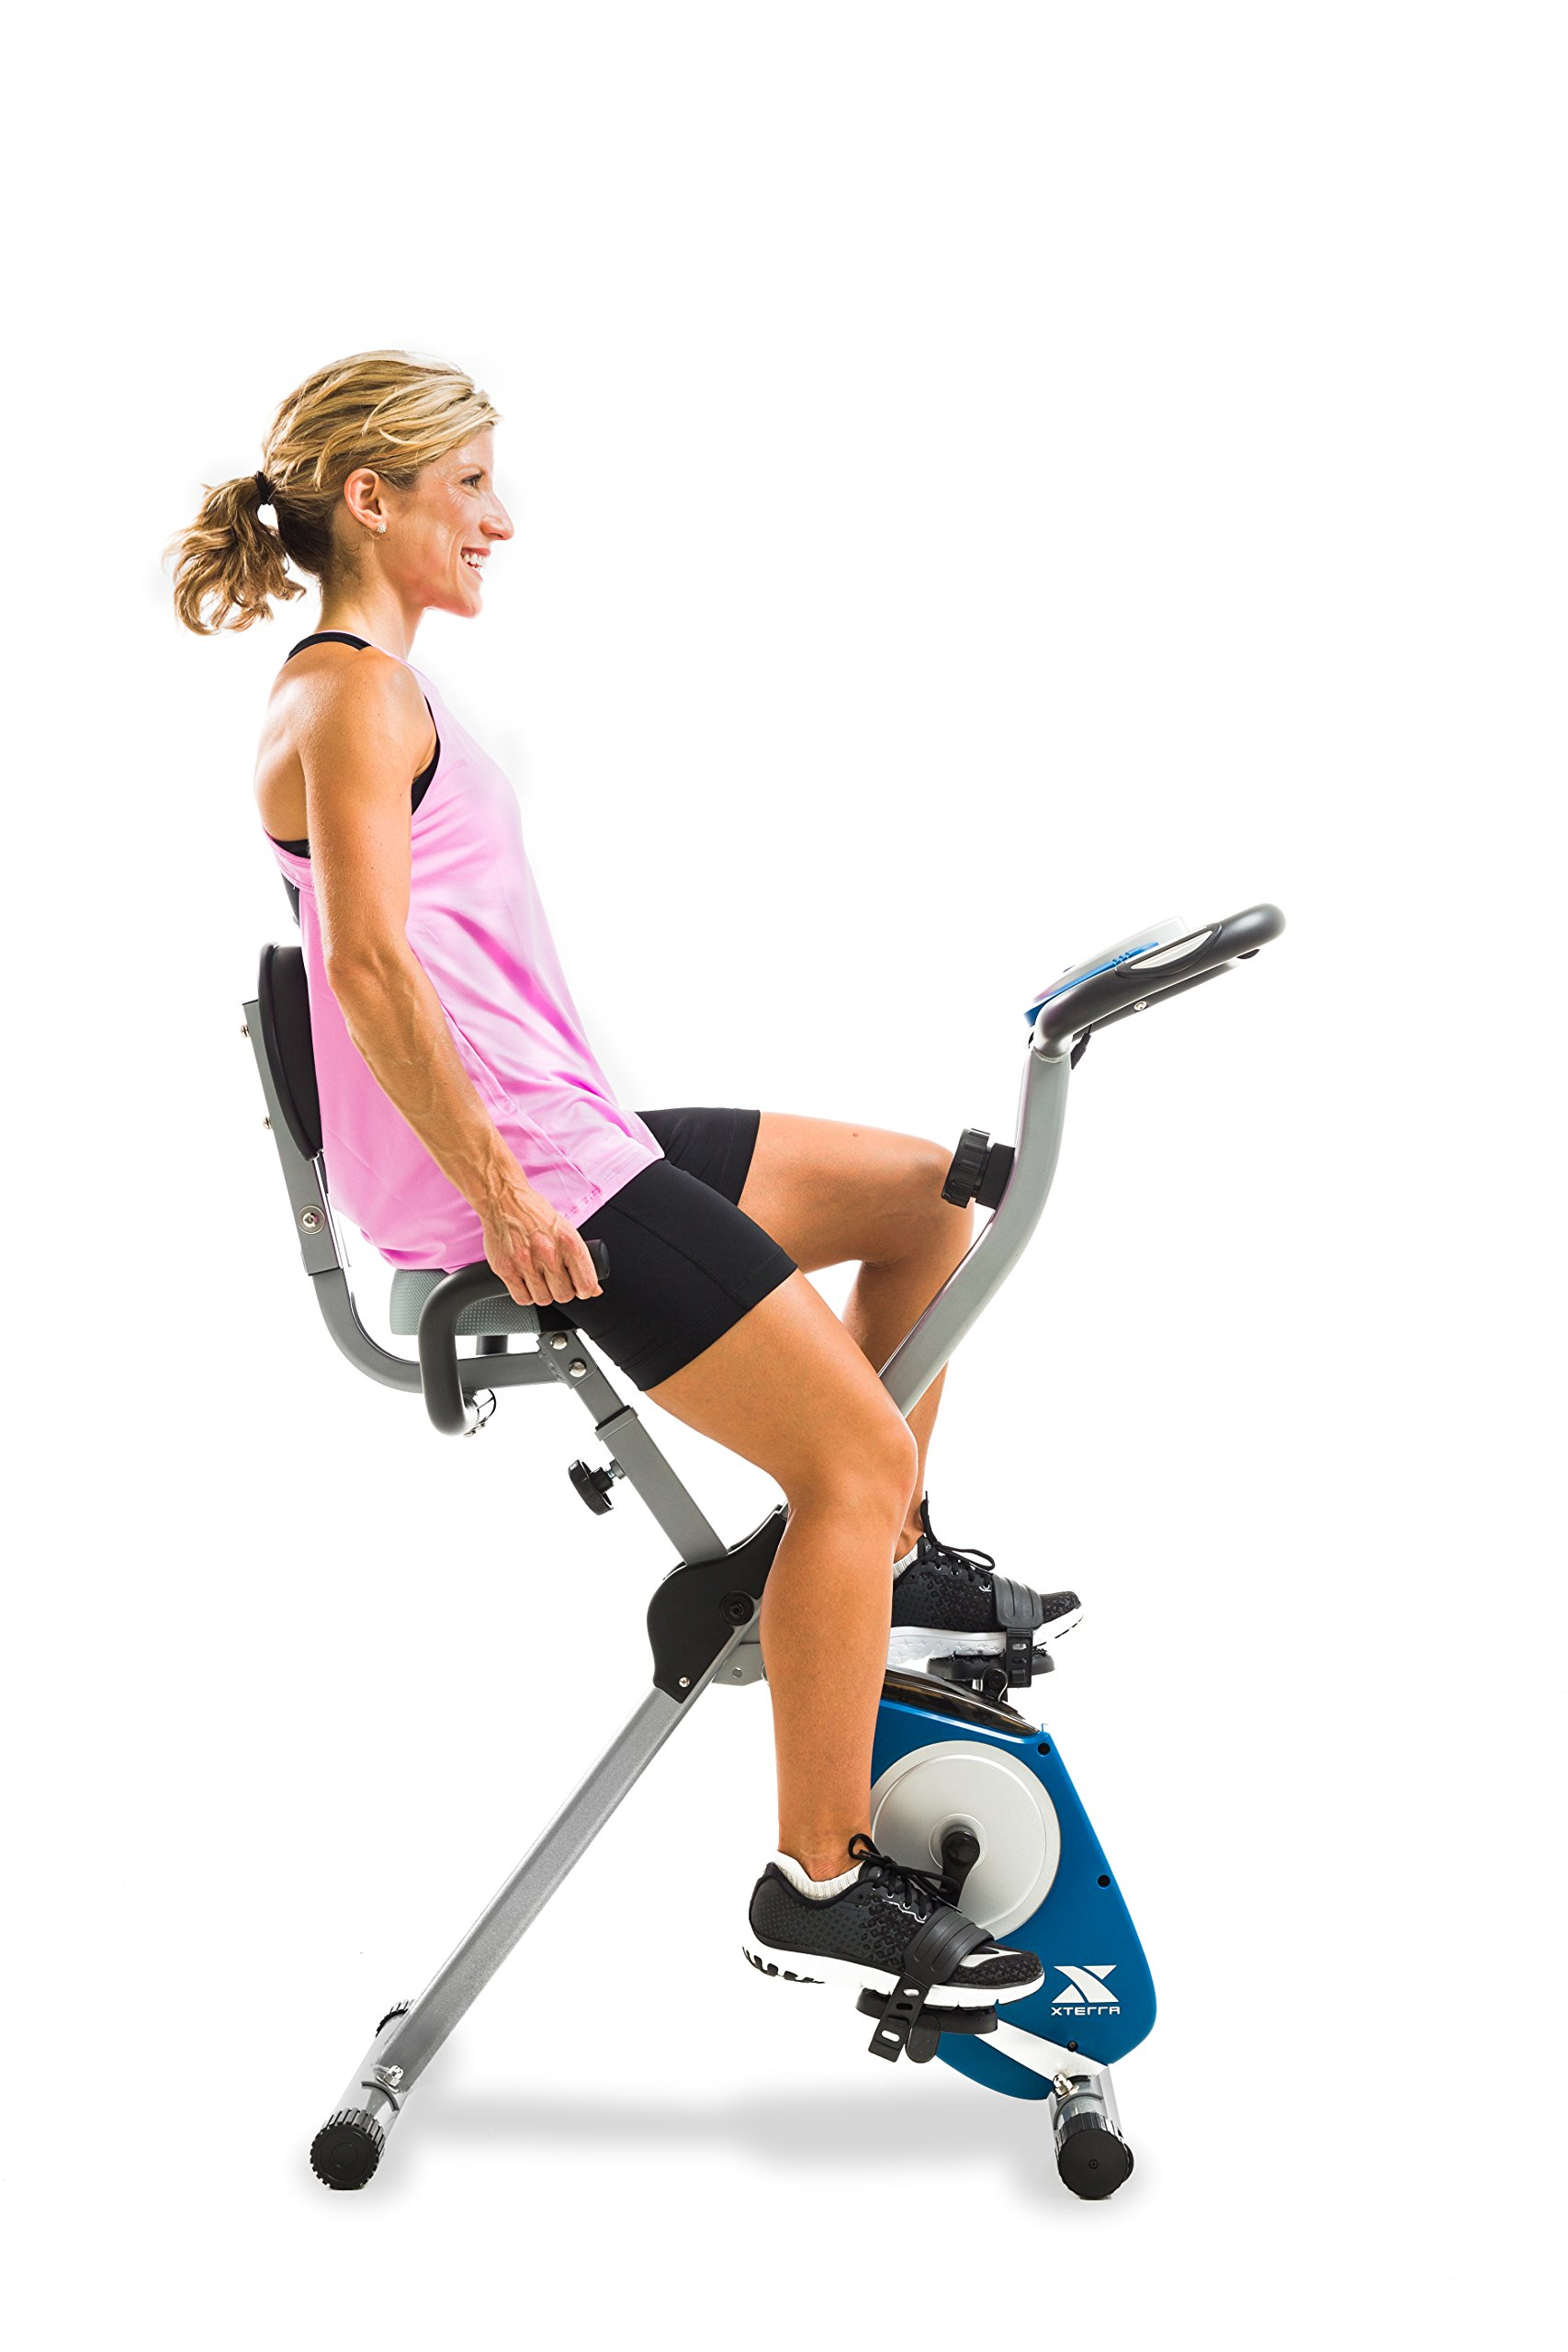 XTERRA Fitness FB350 Folding Exercise Bike, Silver by XTERRA Fitness (Image #8)